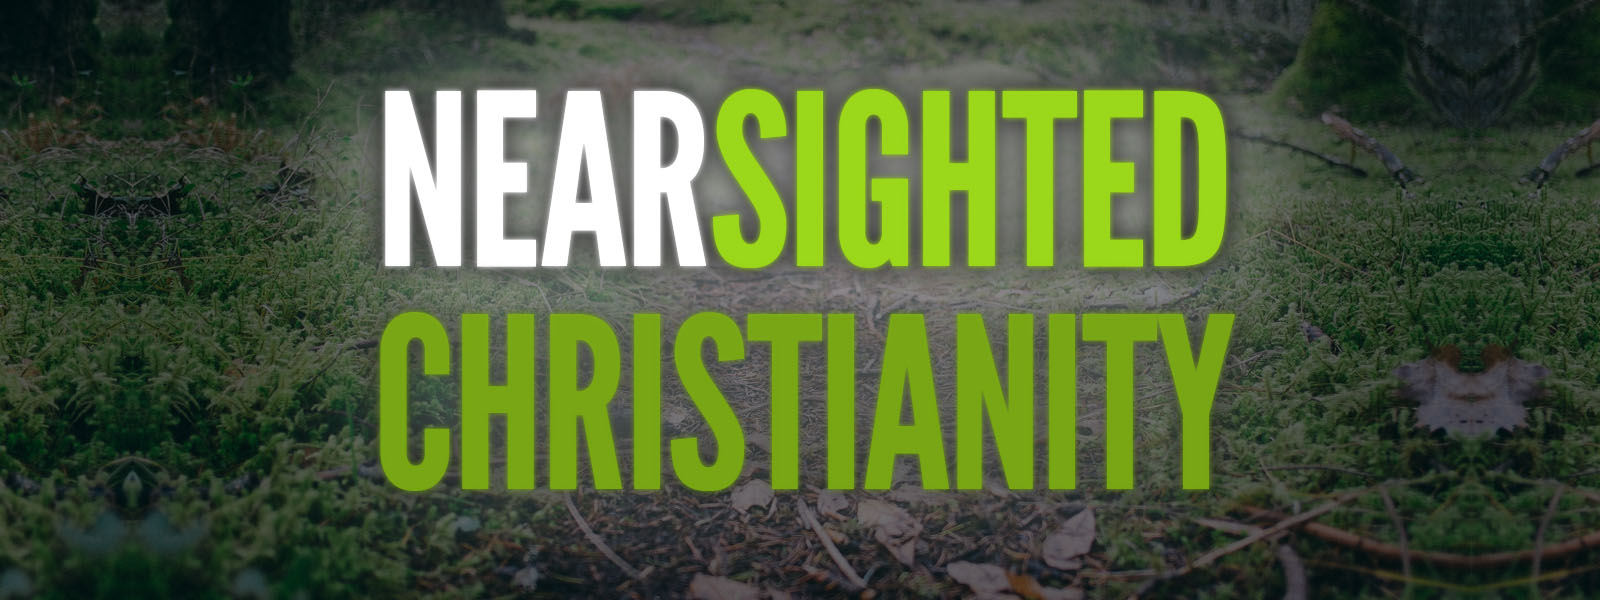 Near-sighted Christianity